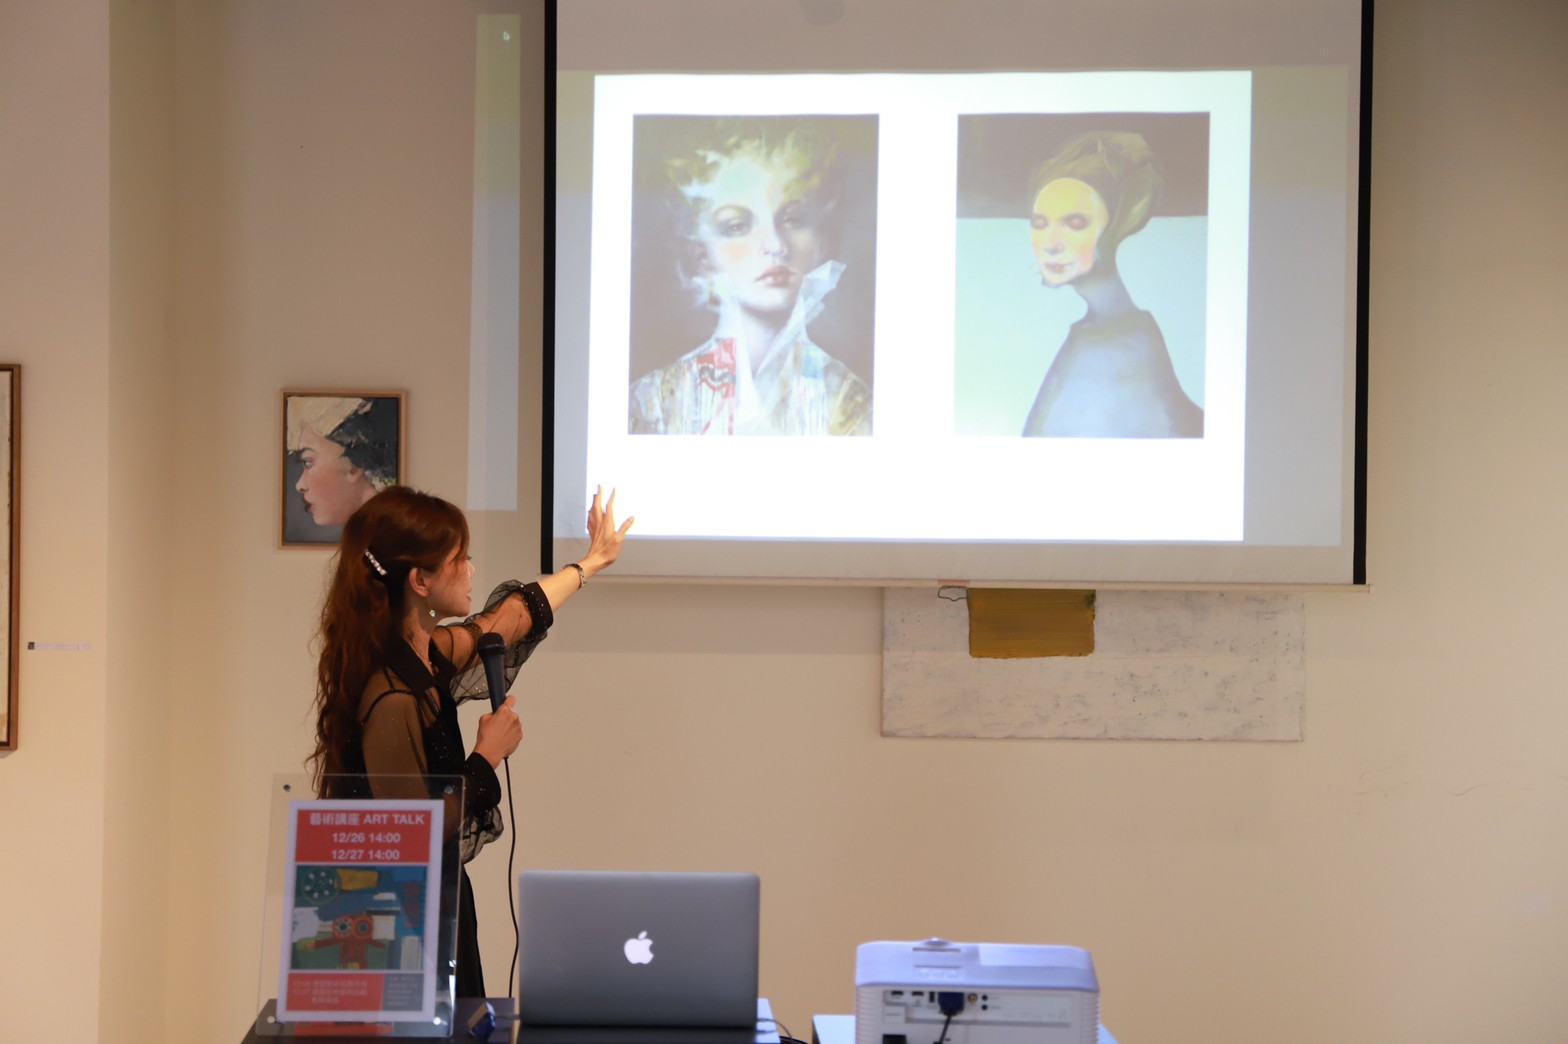 Art Talk at Rodin Art Space Gallery: An Introduction to the Aesthetics of Berlin Artists Copy 4